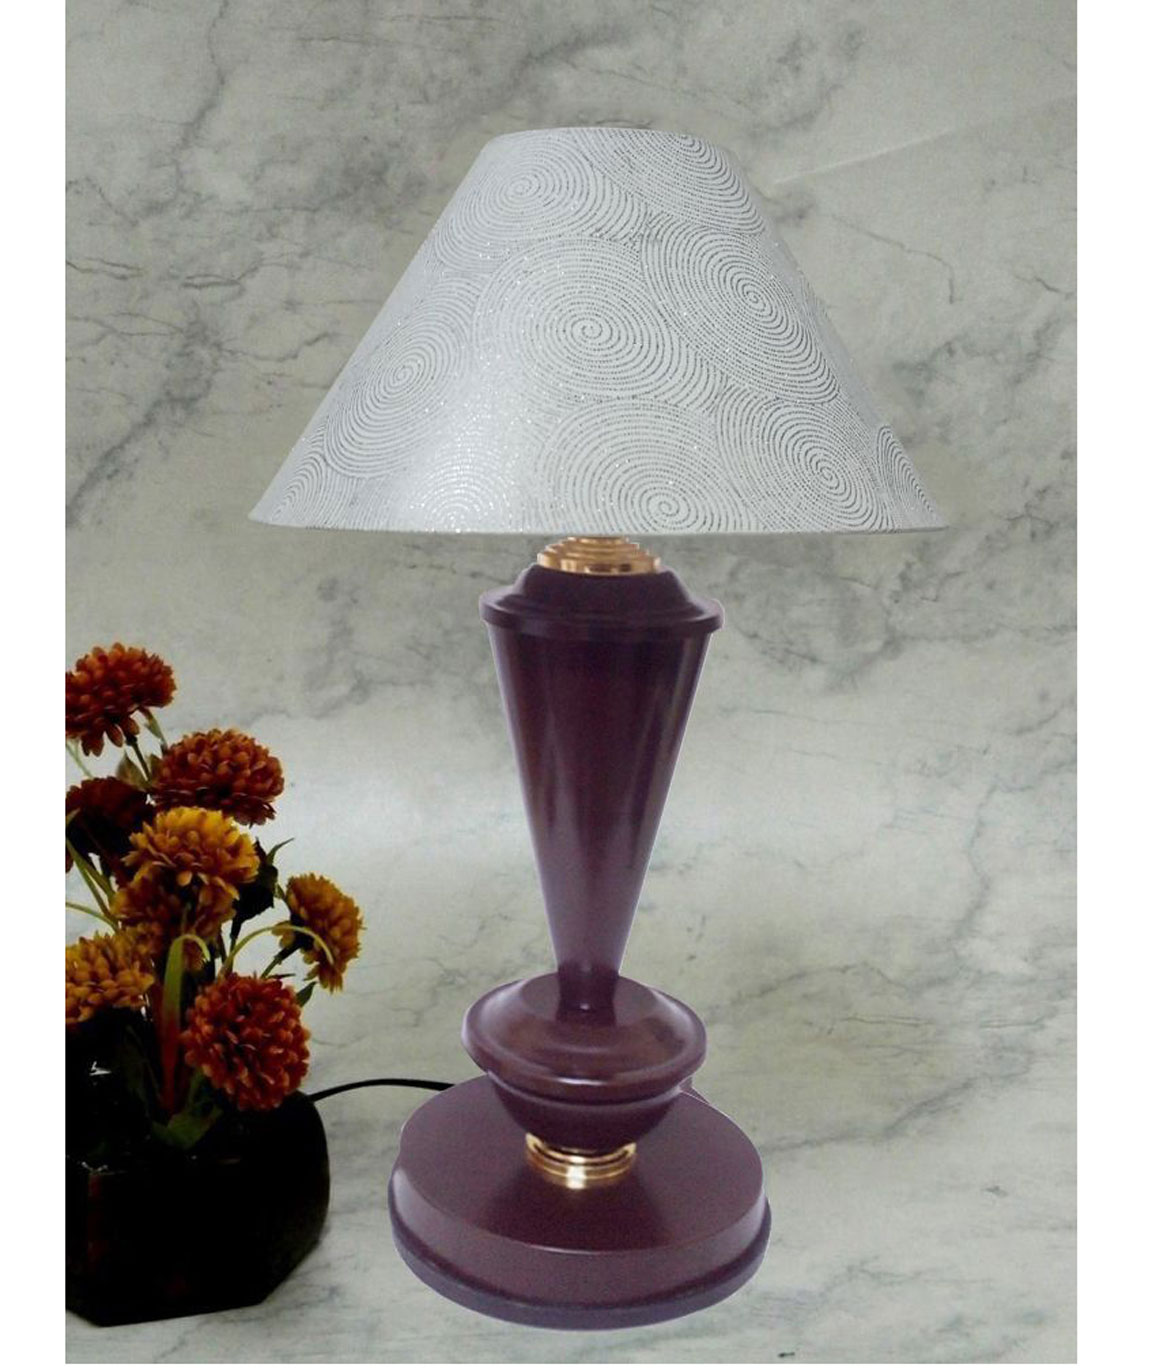 RDC Brown with Golden Base Table Lamp with 10 Inches Round White with Silver Polka Dots Designer Lamp Shade